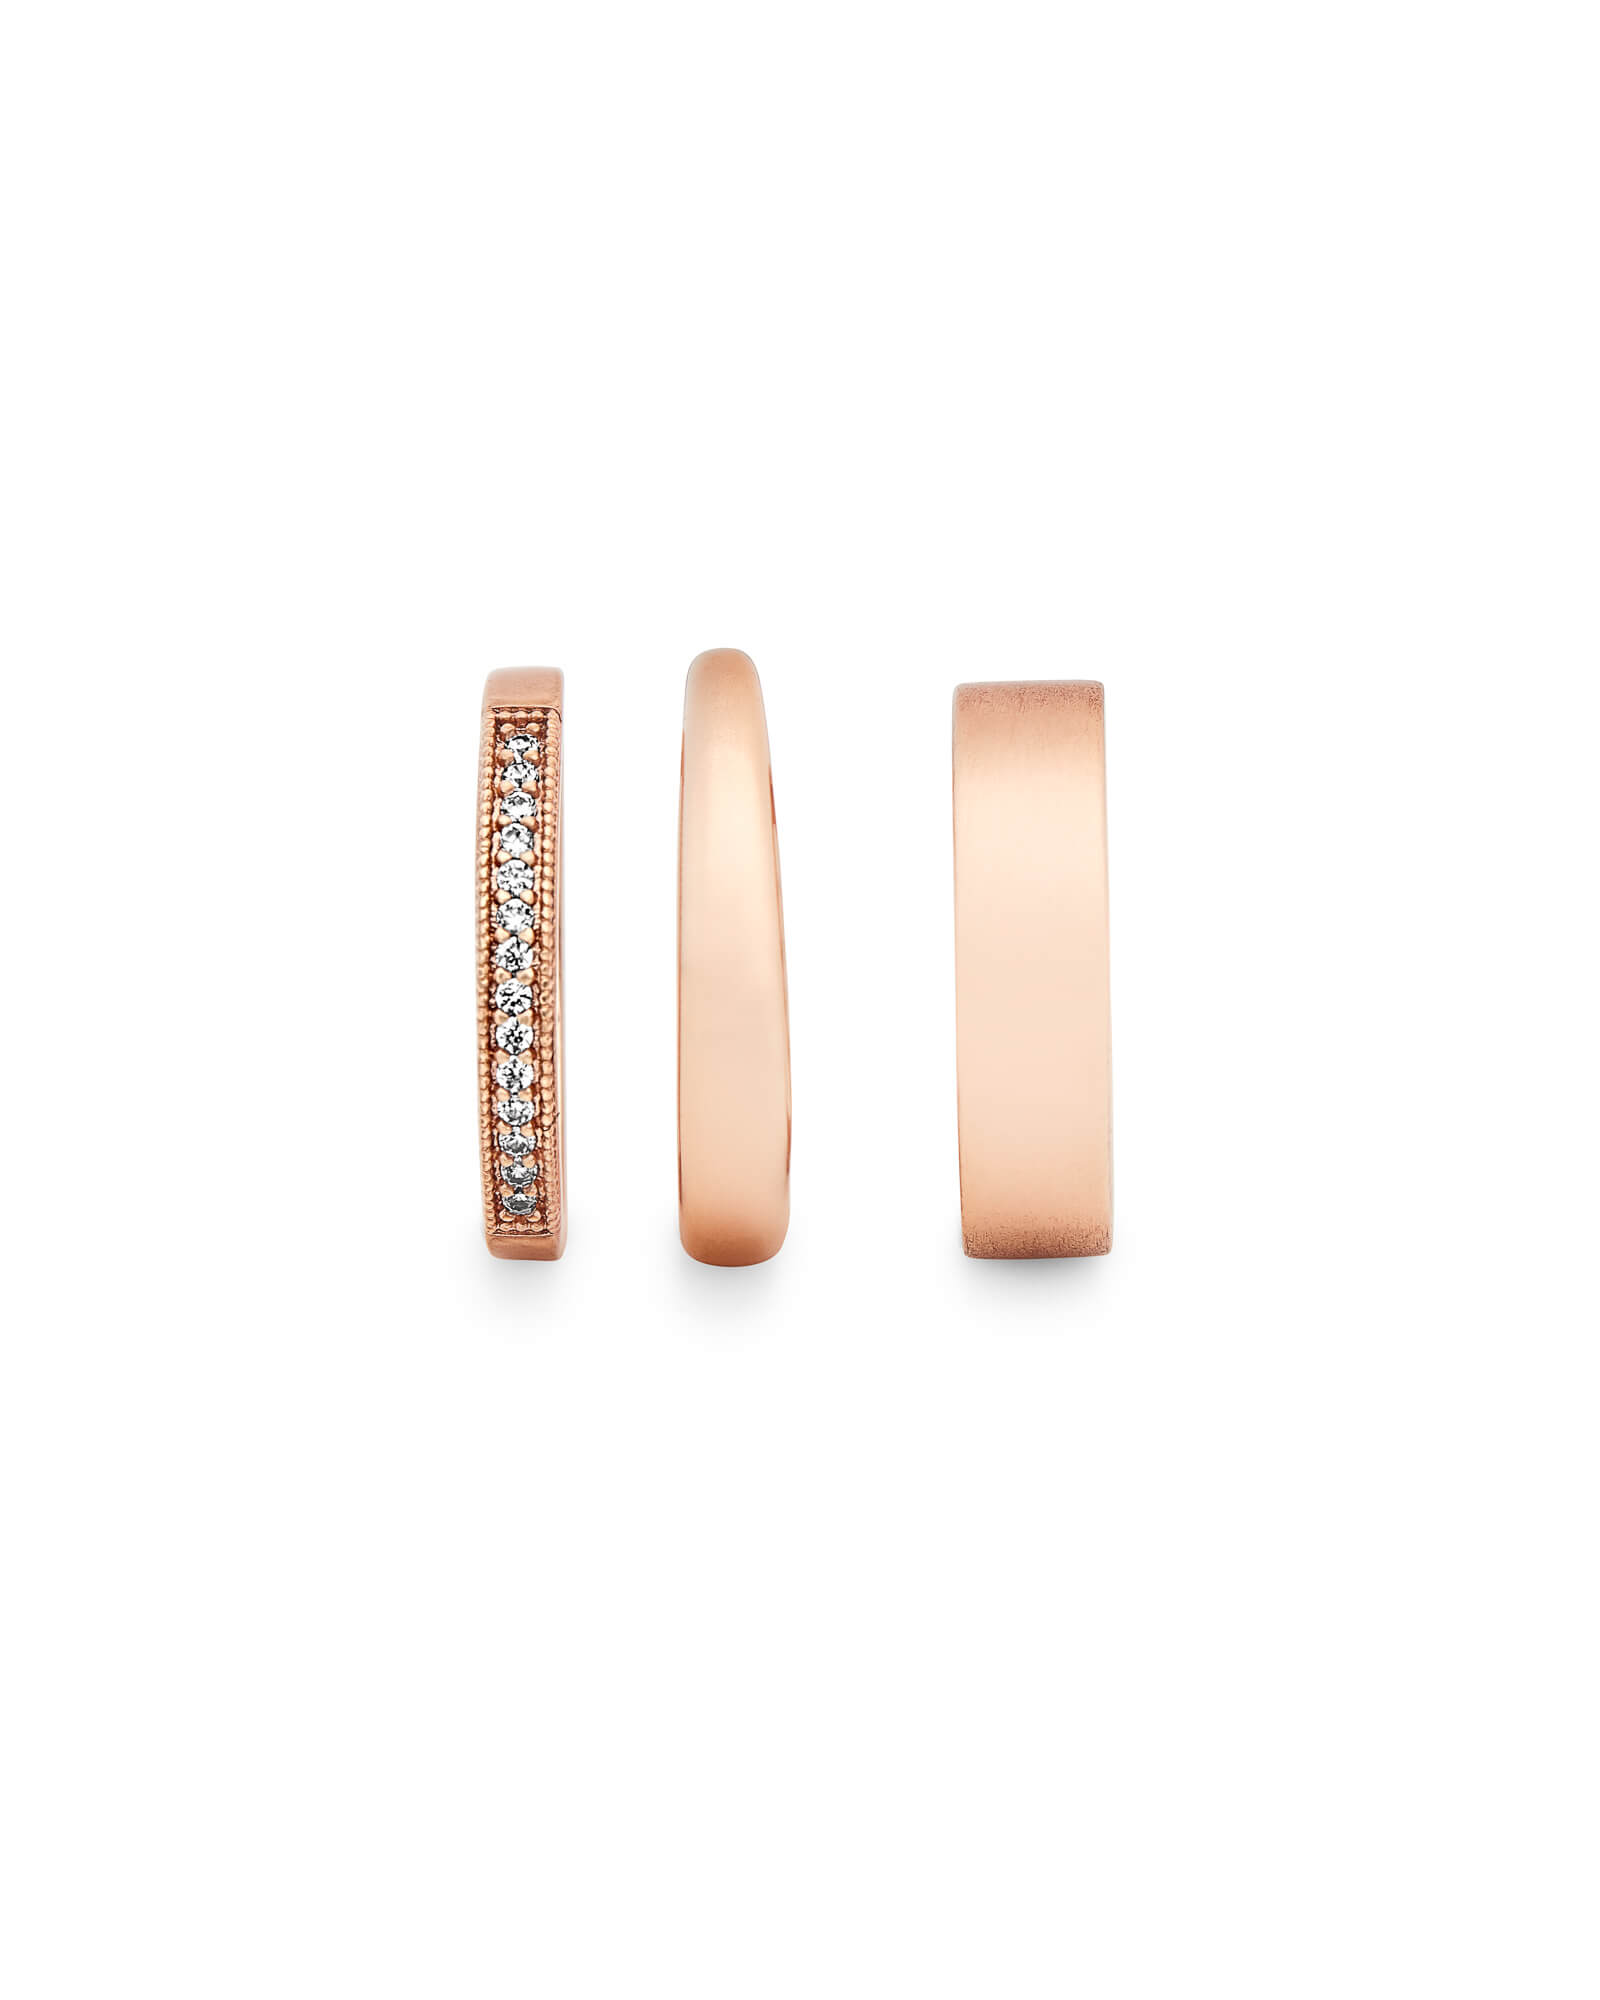 Tate Midi Ring Set in Rose Gold